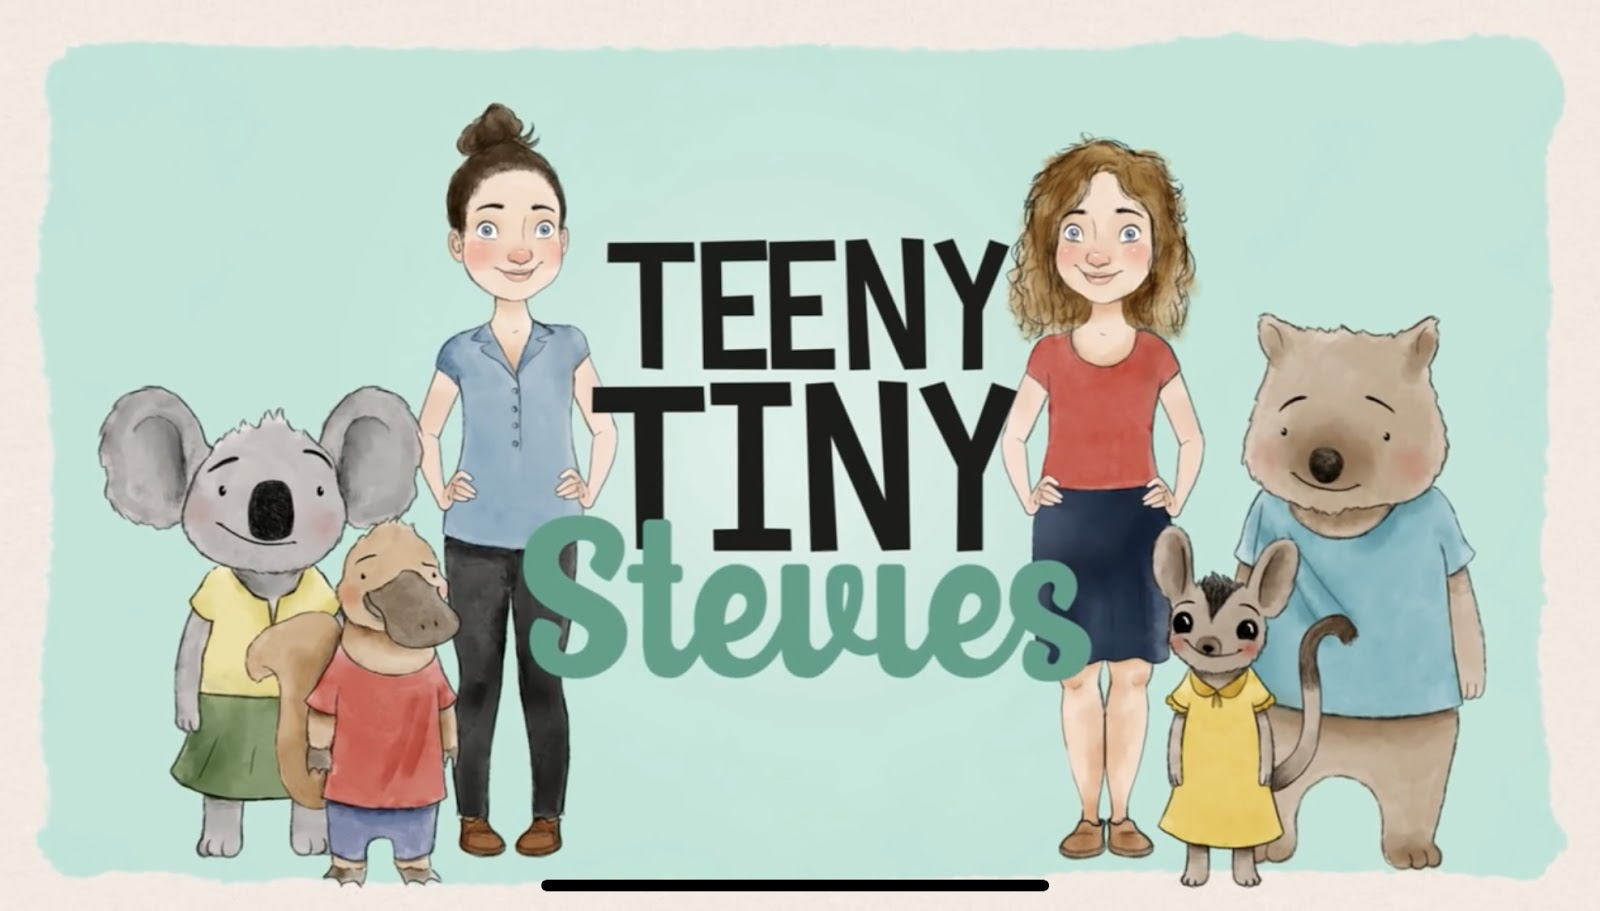 best educational kids shows abc iview teeny tiny stevies